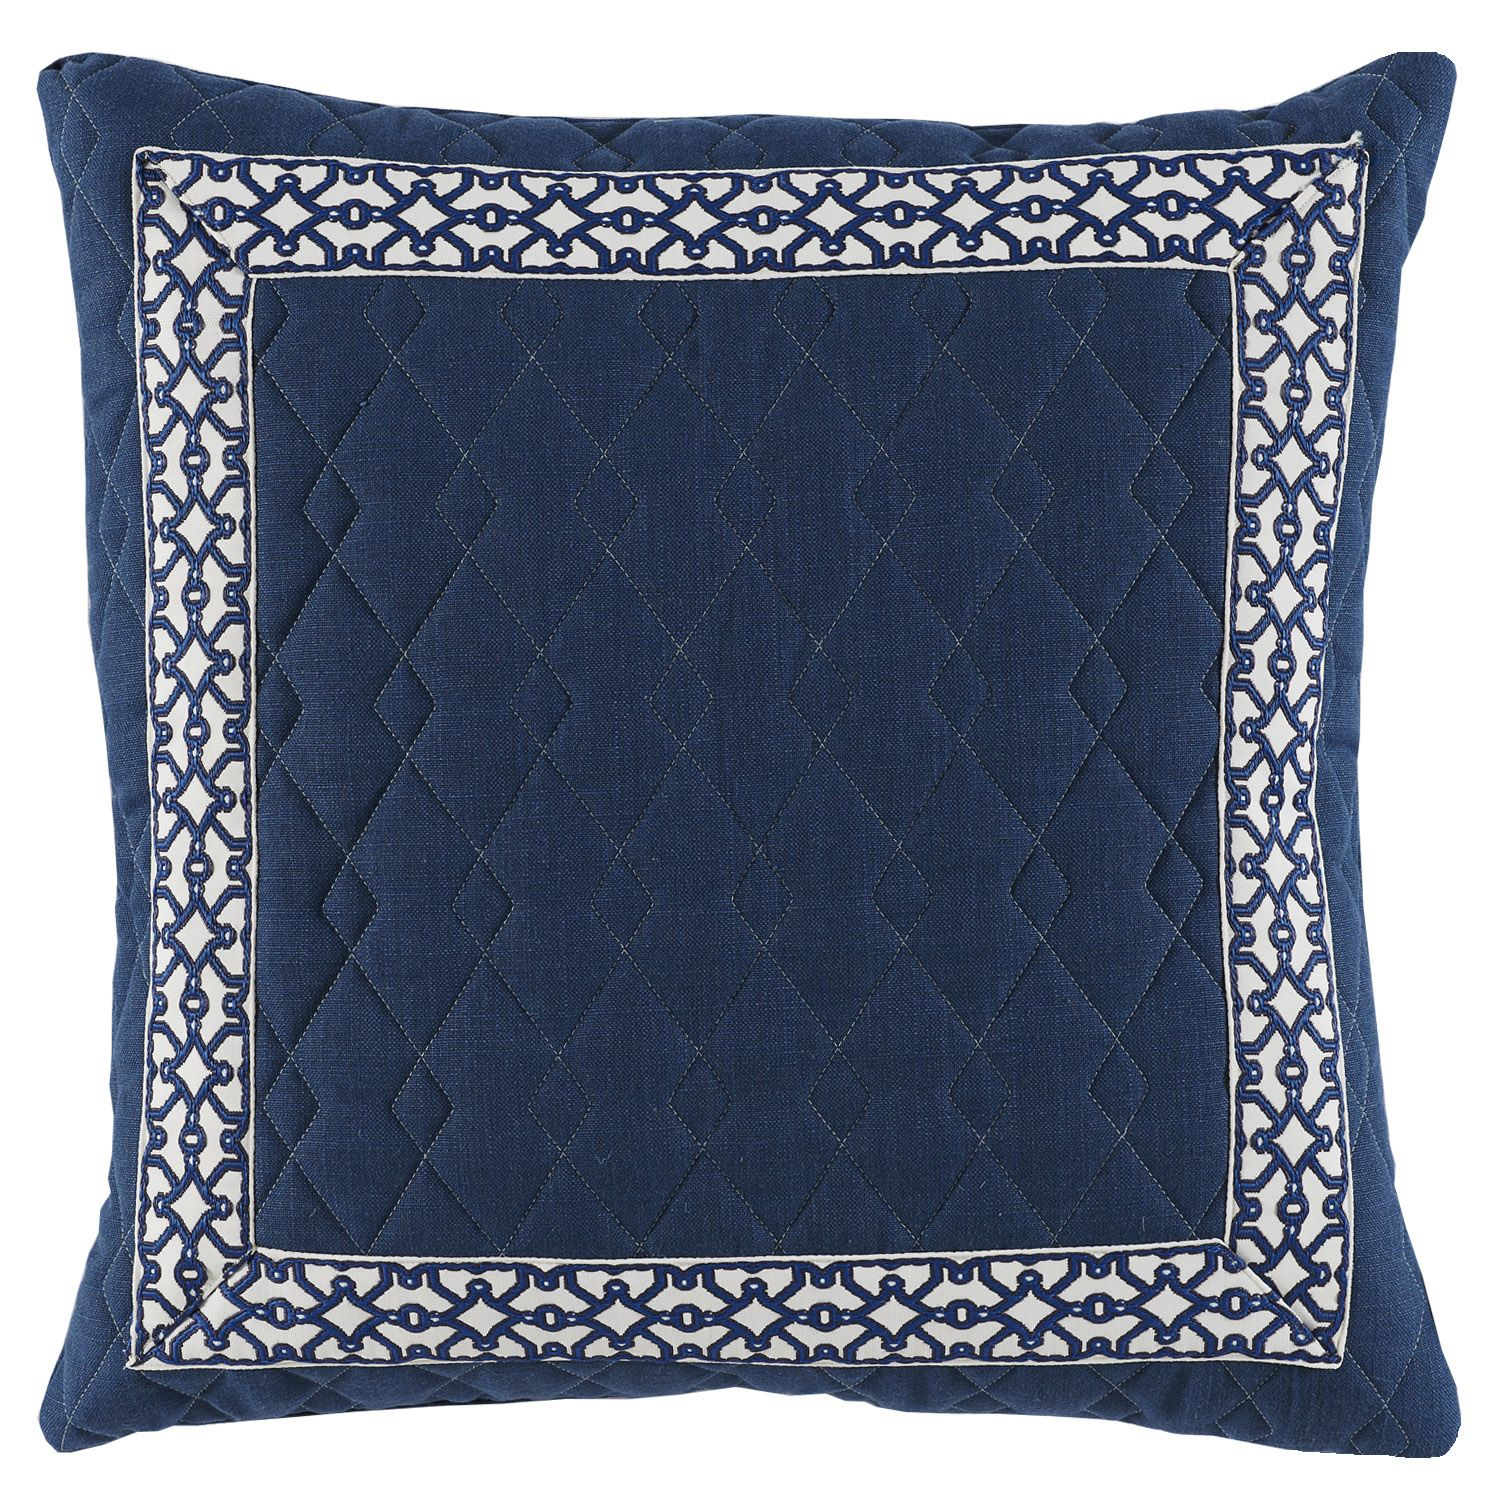 22X22 Pillow Insert Awesome D896 Lacefield Quilted Denim Linen 22X22 Pillow With Navy Florence Design Inspiration